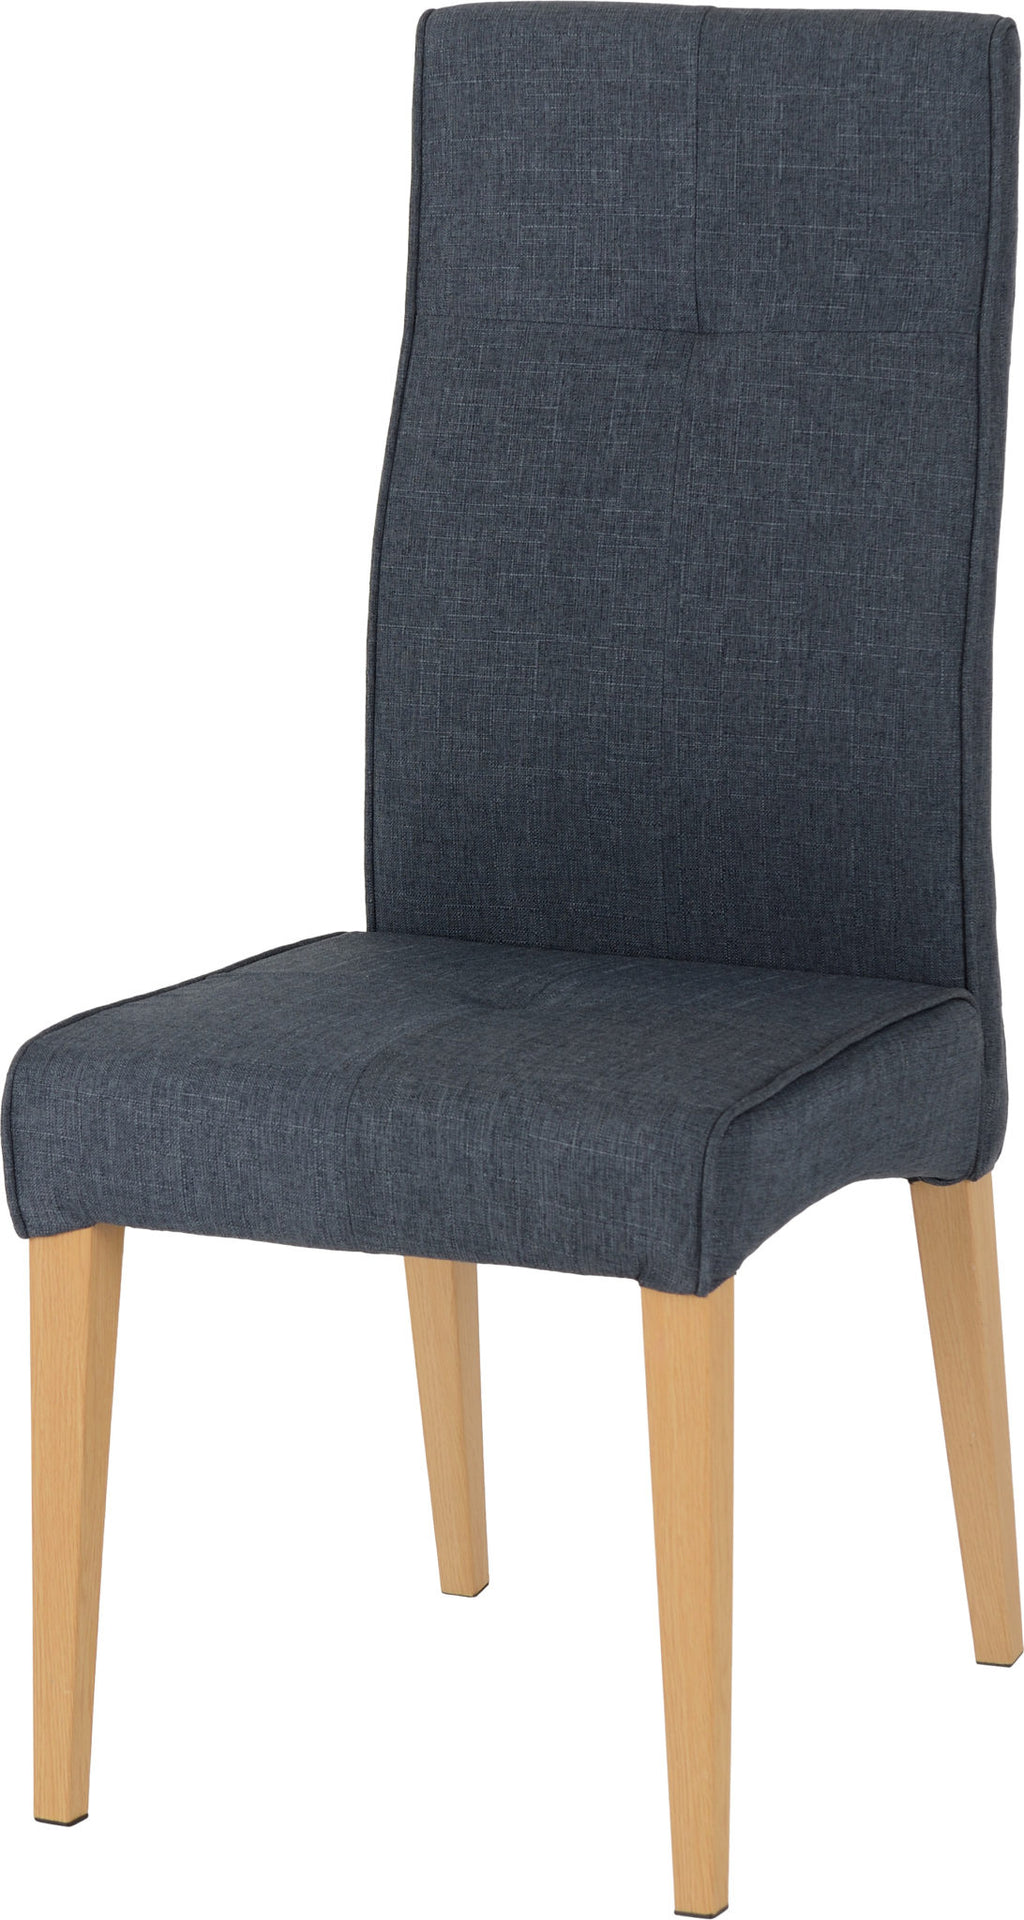 Lucas Chair - Sold in Pairs